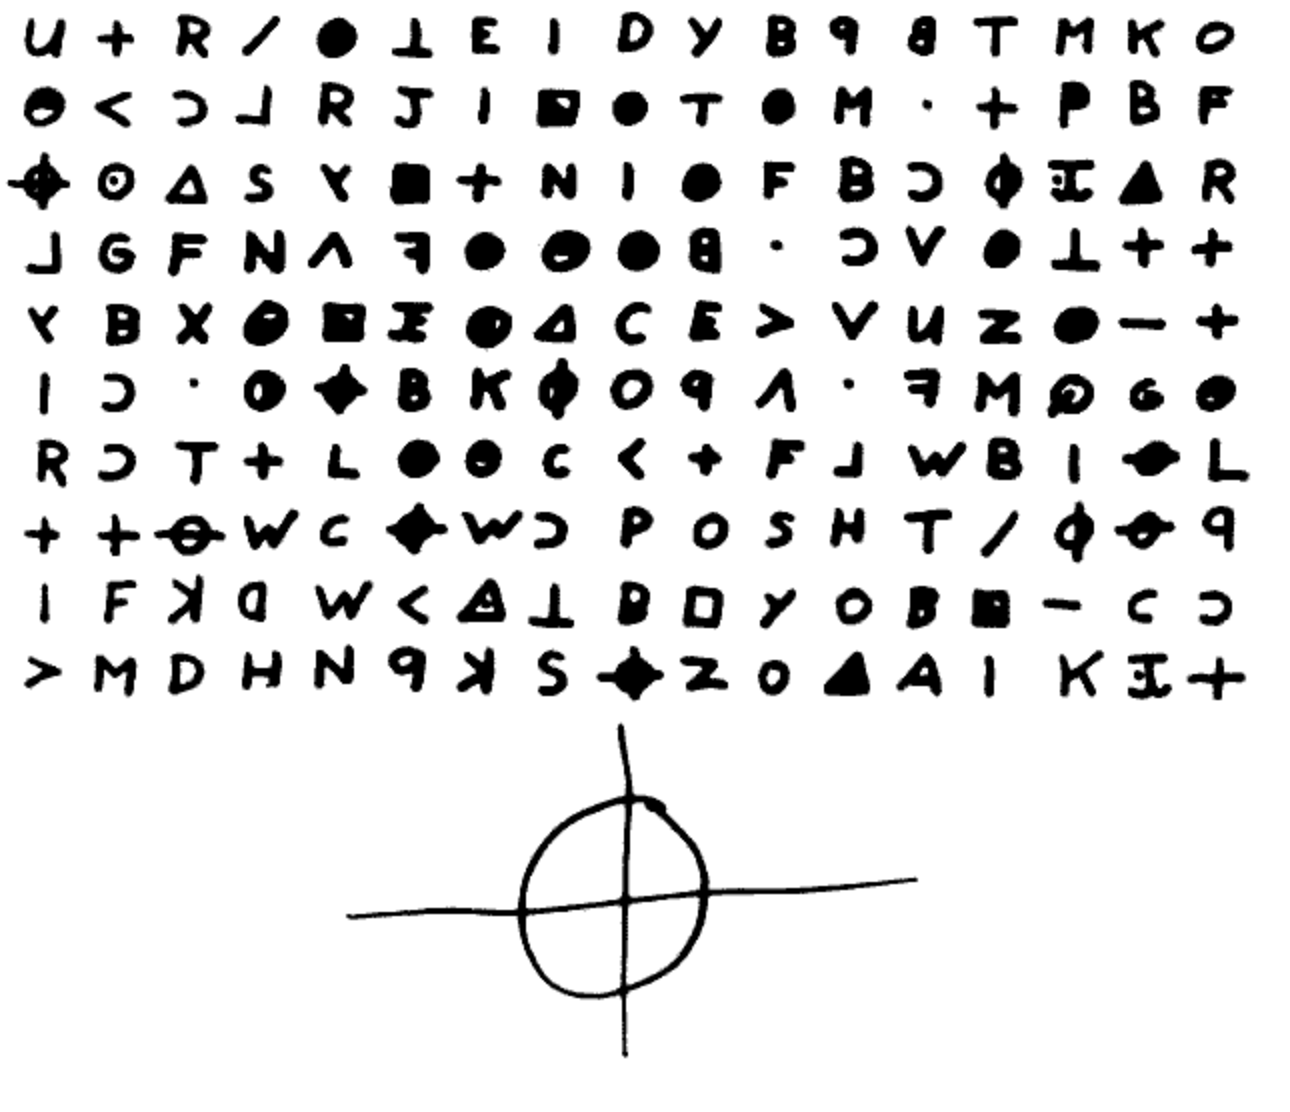 learn how to crack ciphers